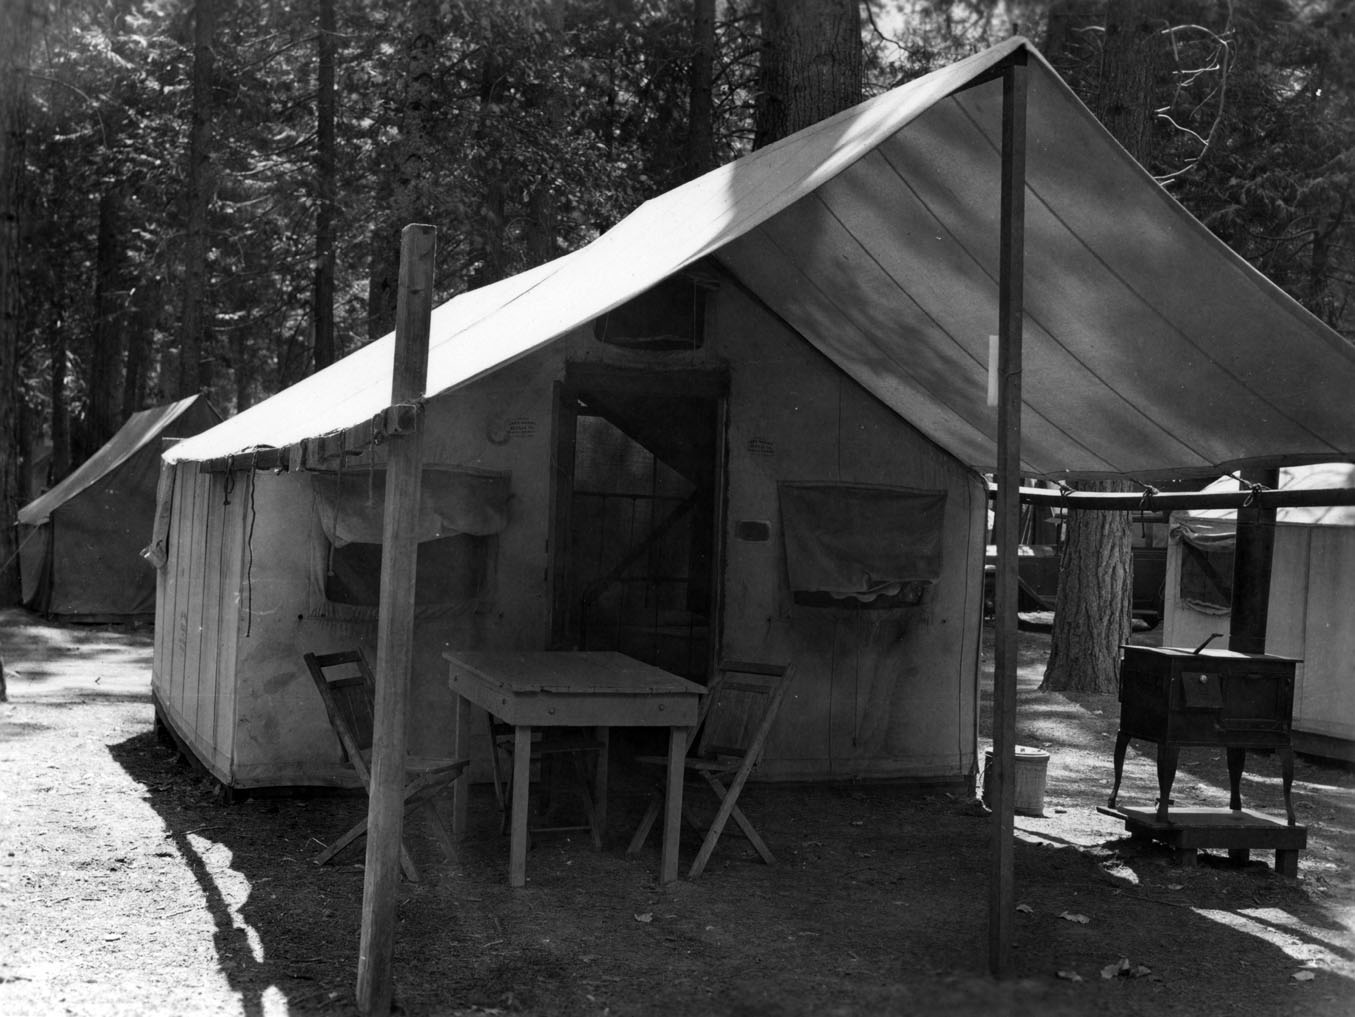 Re: A Short History of the Oddly-Named Housekeeping Camp ...